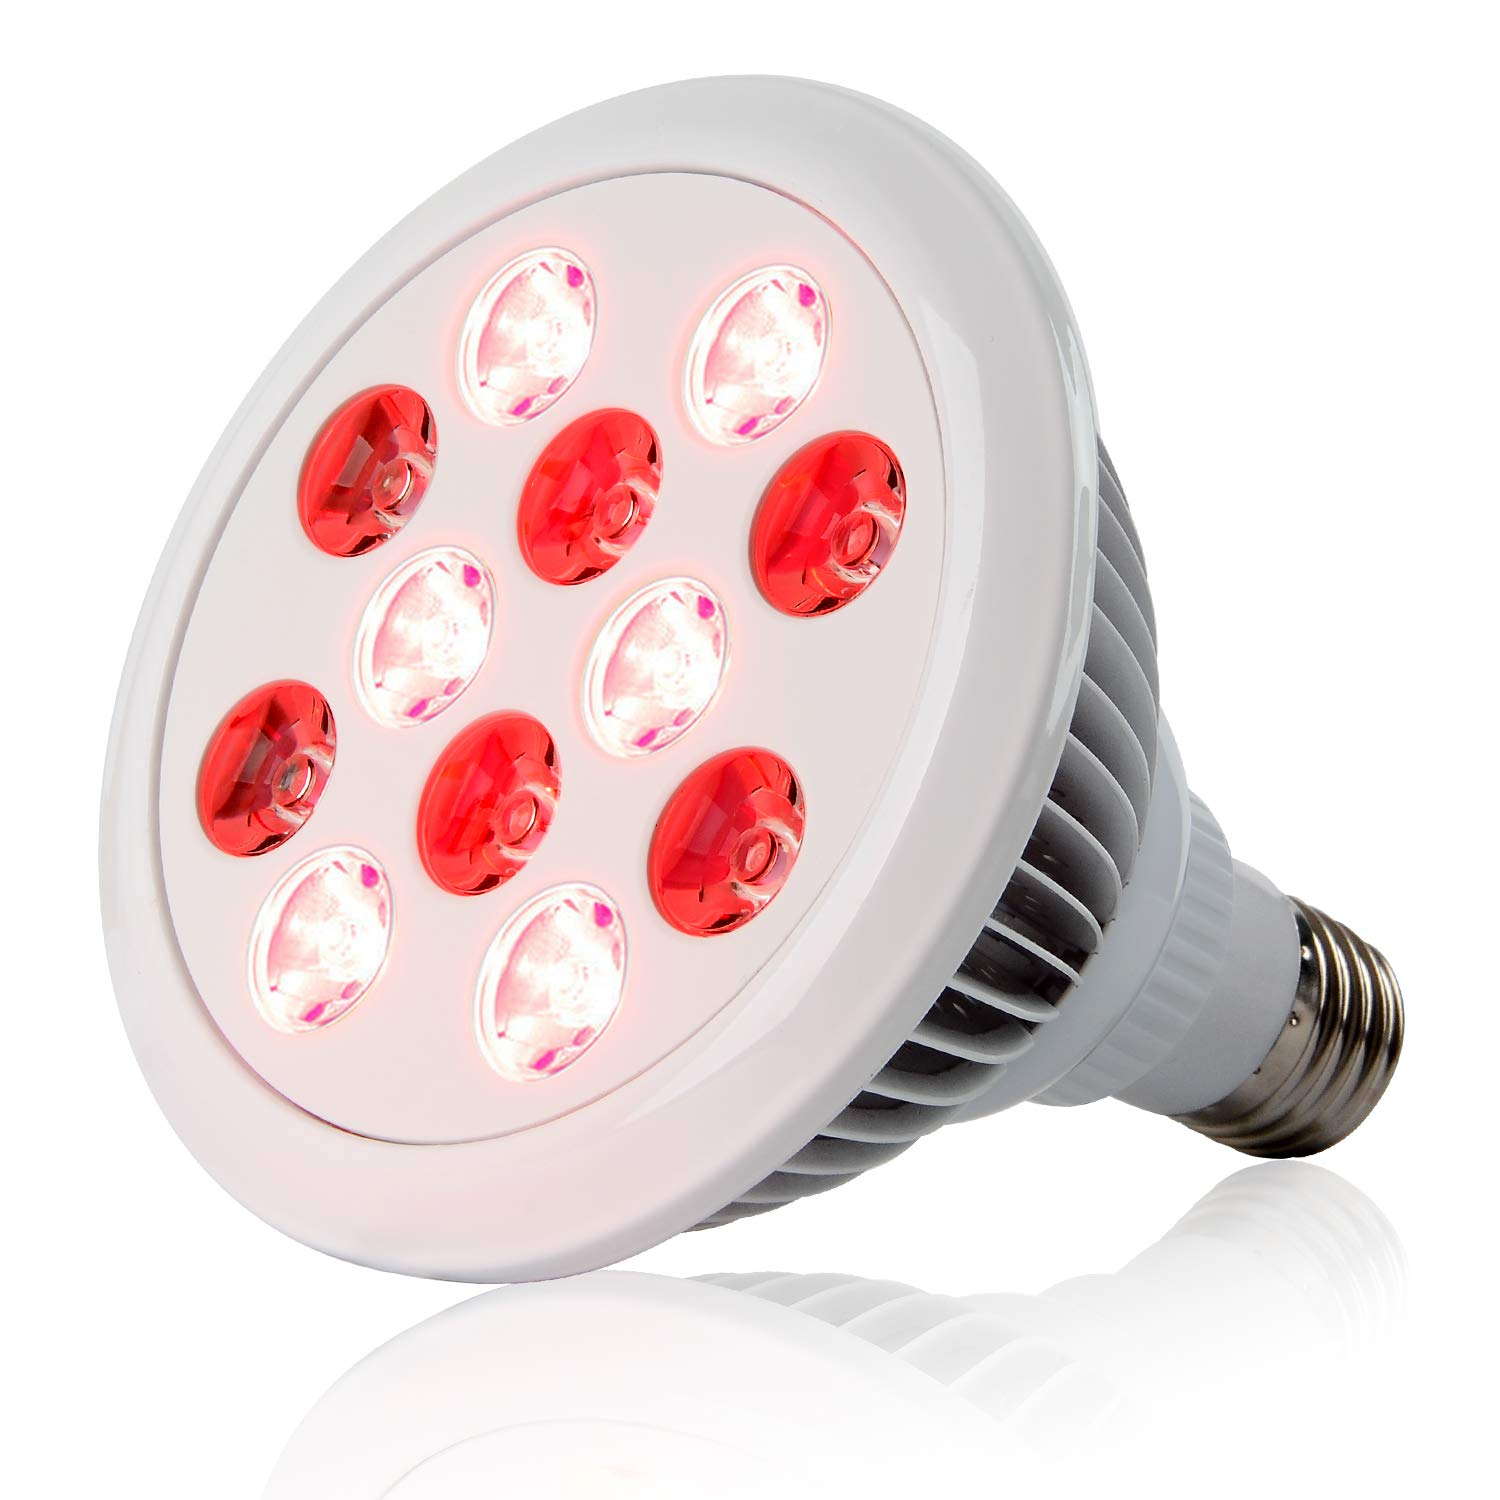 24W Red Led Light Therapy Deep Red 660nm and Near Infrared 850nm Led Light Therapy Bulbs for Skin and Pain